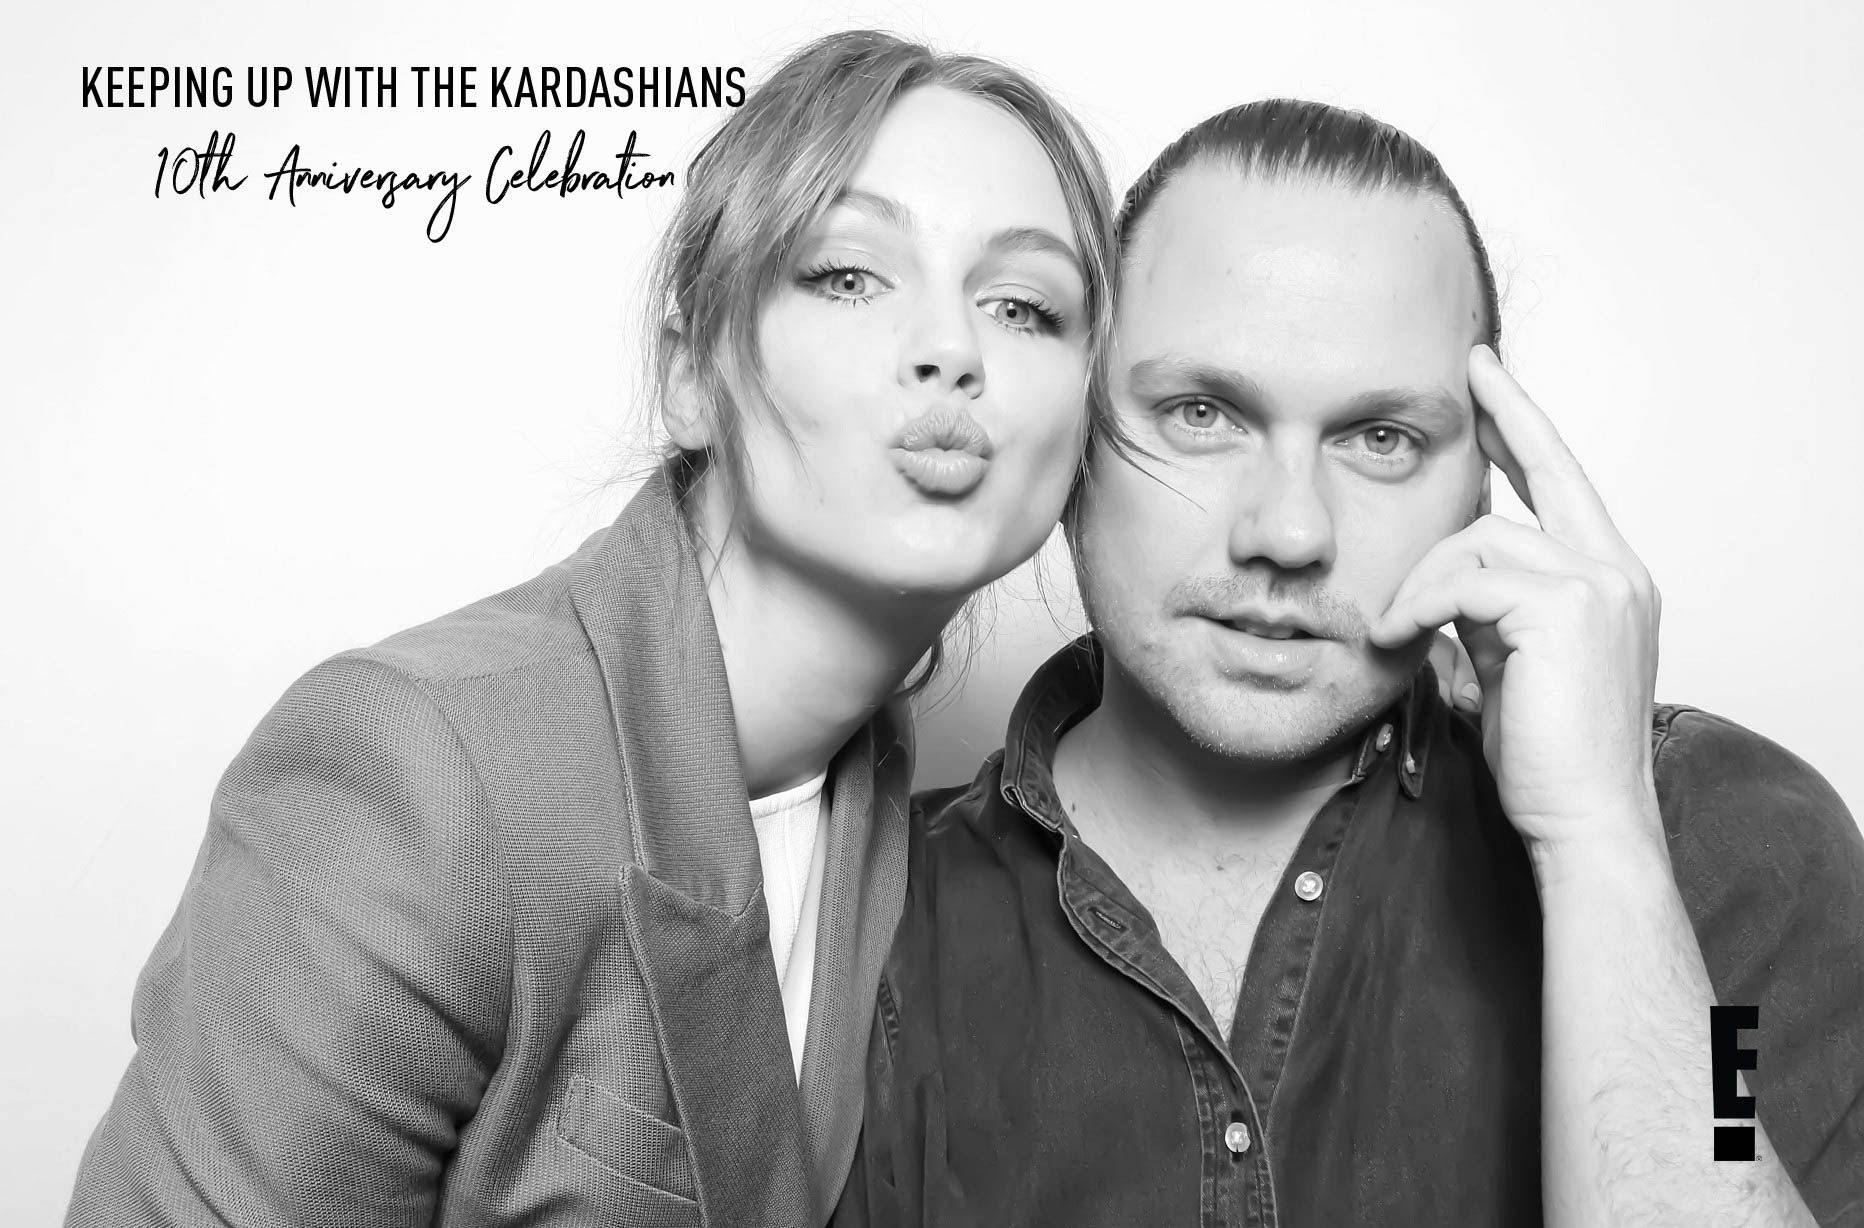 KUWTK 10th Anniversary - Keeping Up with the Kardashians Photo Booth